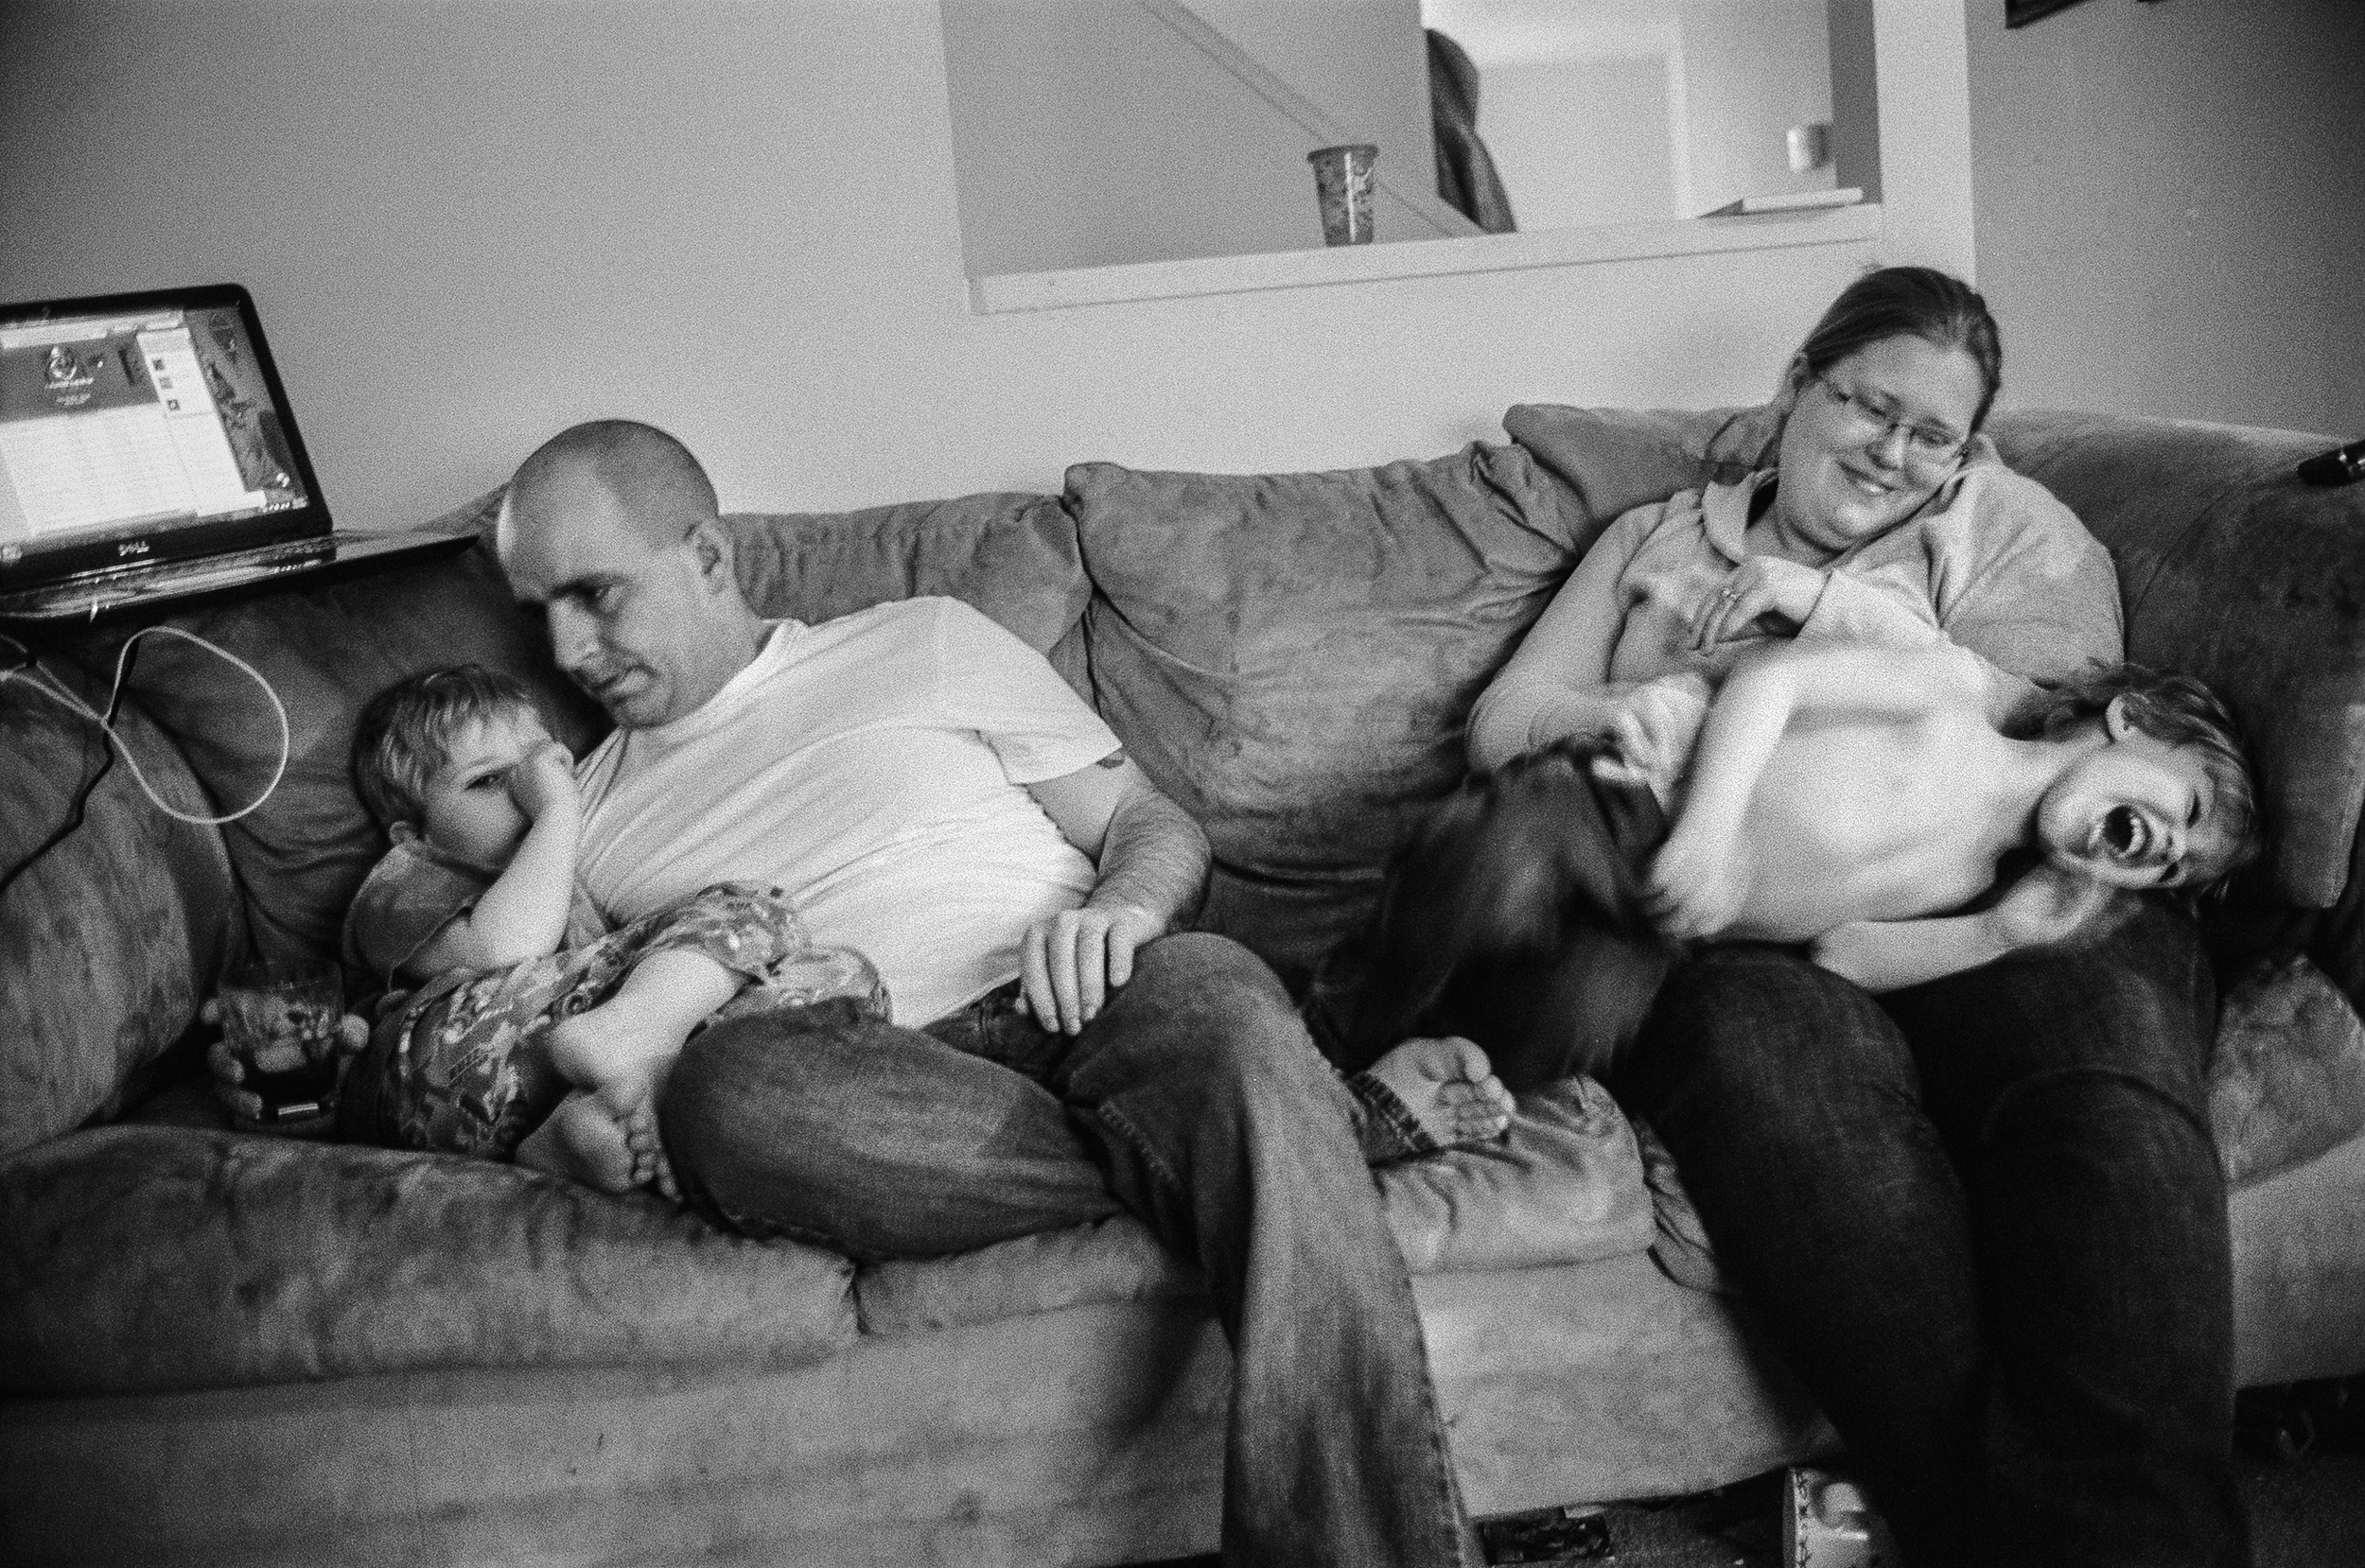 SPC Matthew Ledford sits at home with his wife, Scarlett, and their children at Fort Drum, New York, 2011. Ledford suffers from PTSD and anxiety.